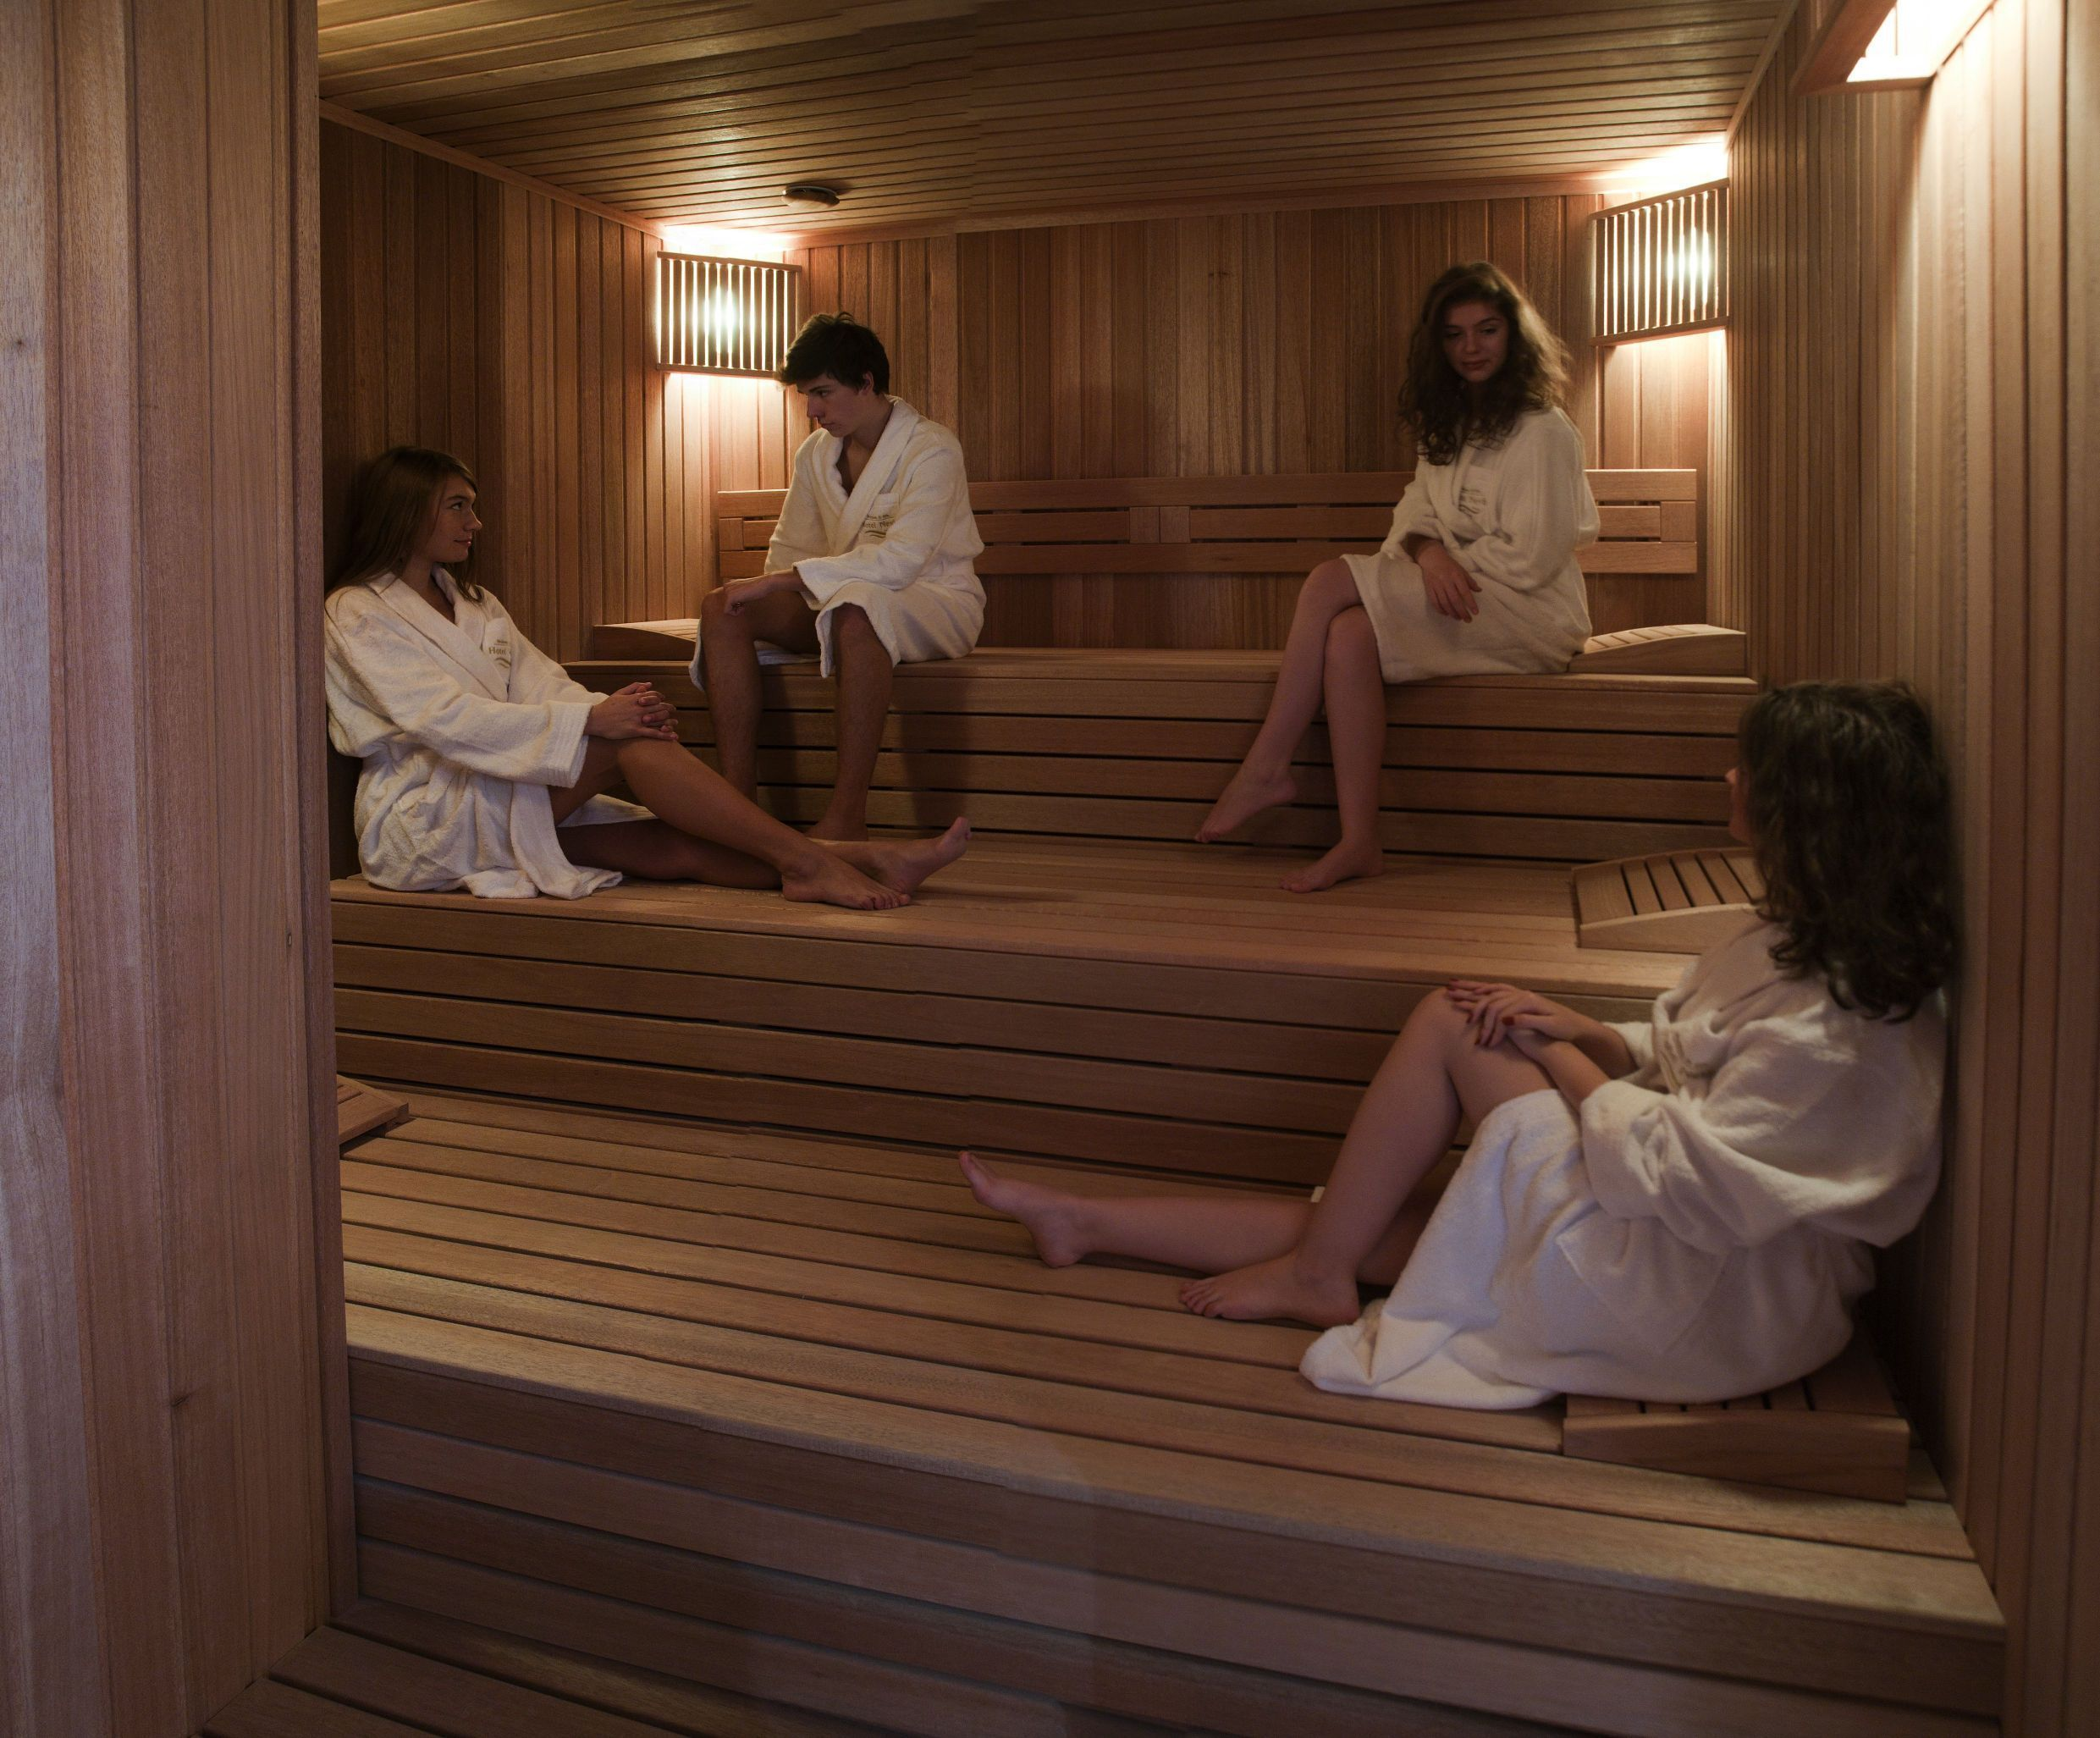 Couple In Towels Resting In The Sauna. Stock Photo - Image